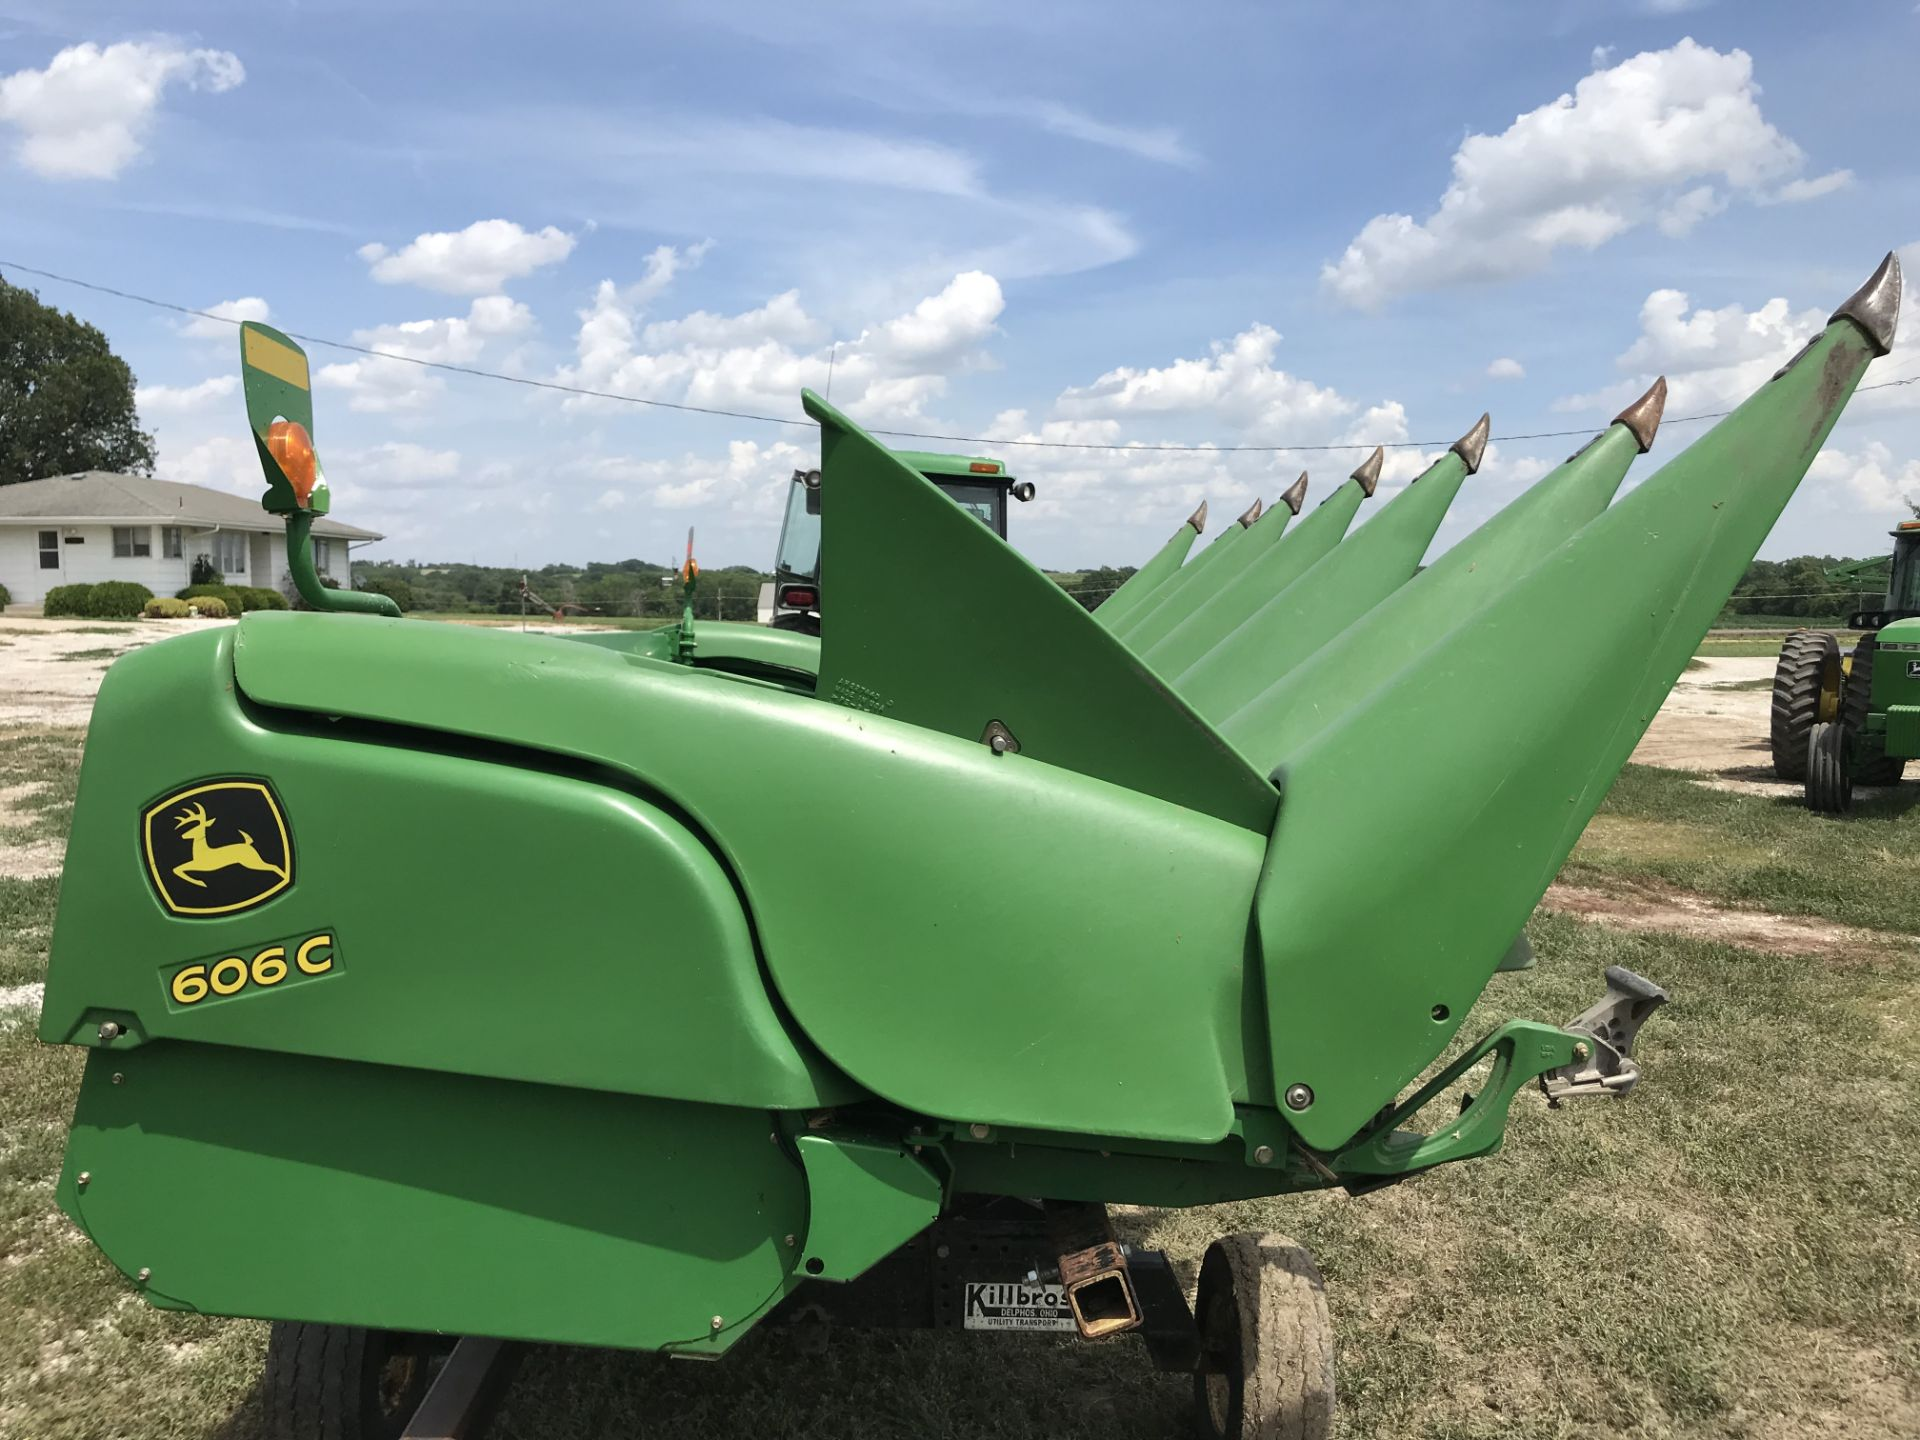 Lot 2 - 2010 JD 606C 6RN Ploy Corn Head, Hyd, Deck Plates, Header Height Sensing, Single Point Hook-up,